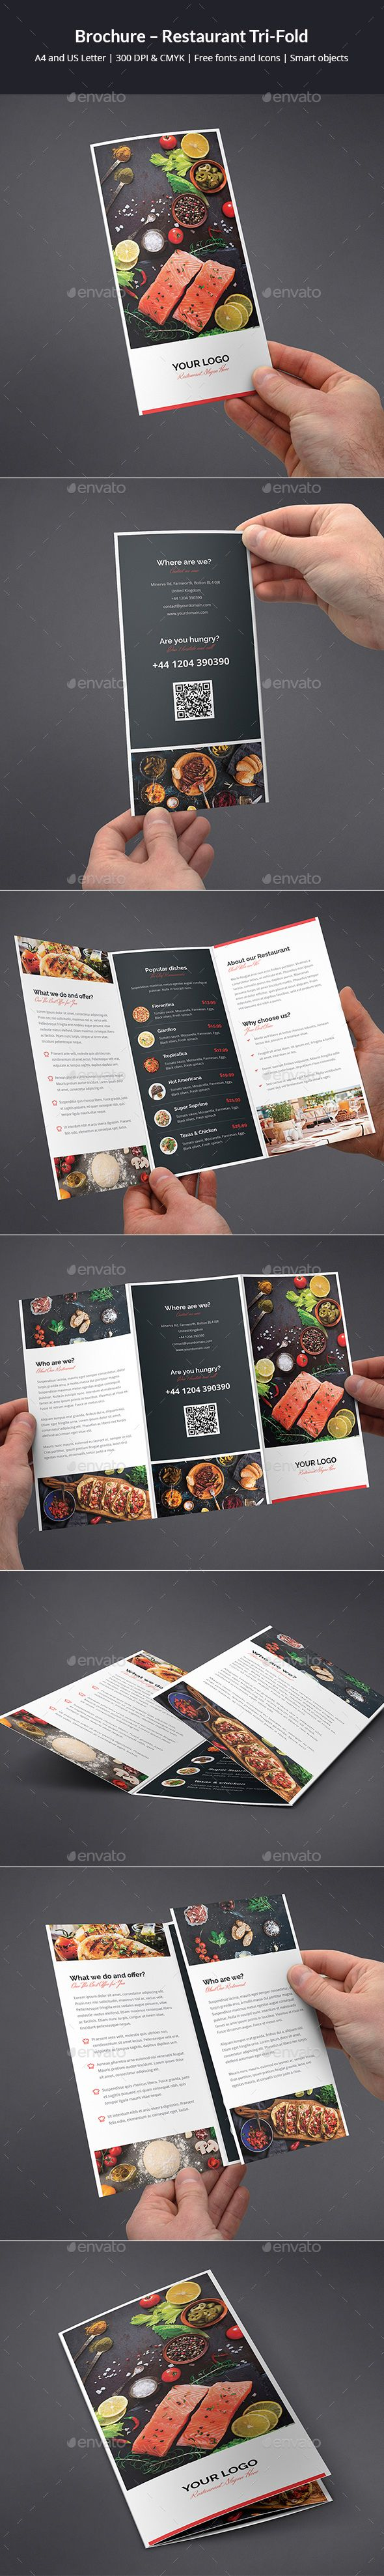 Brochure �20Restaurant Tri-Fold by artbart This is a brochure for many applications. You can easily edit and adapt to your business, as well as bar, bistro, fast food, resta